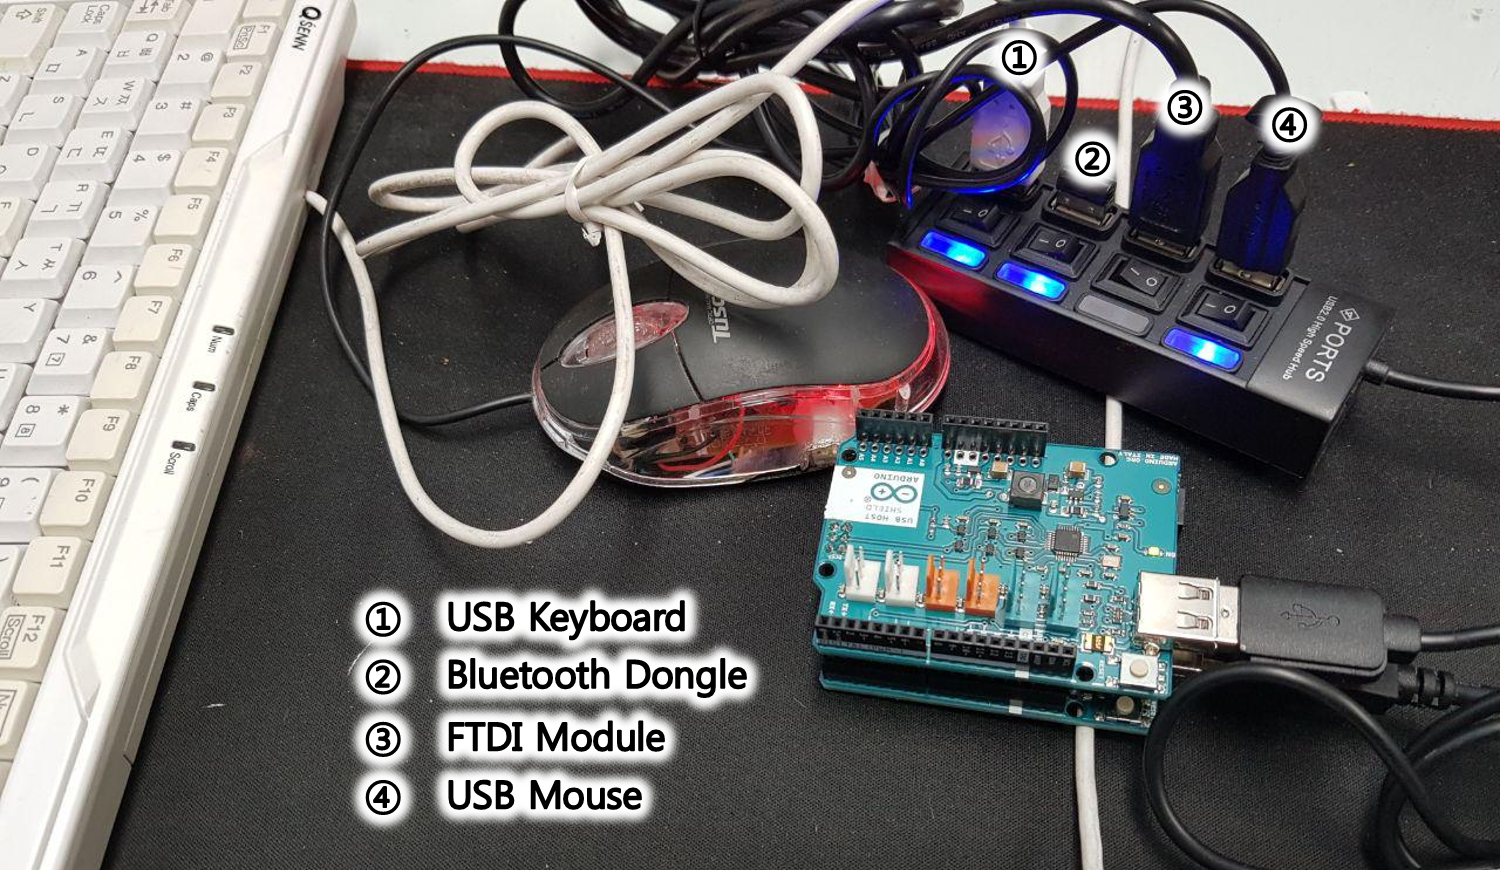 The Hid Device Is Not Recognized Through The Usb Hub Issue 334